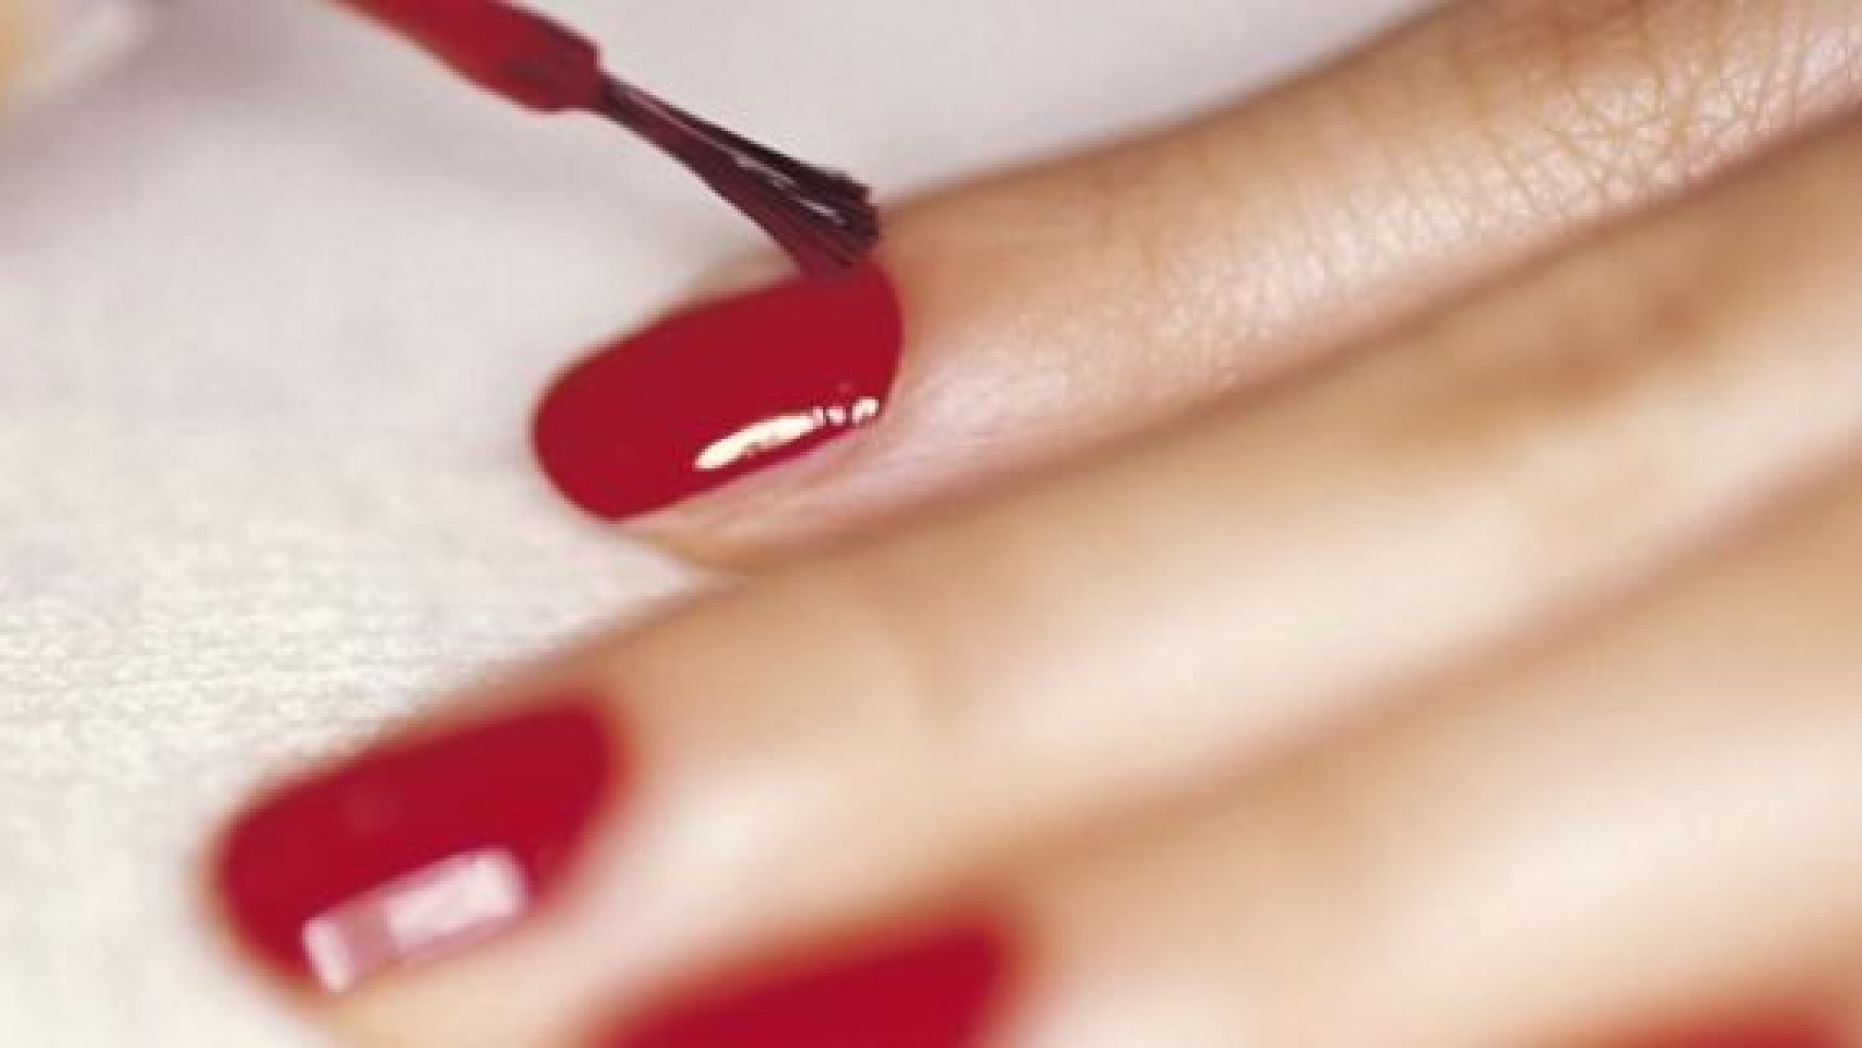 How long does shellac last on real nails